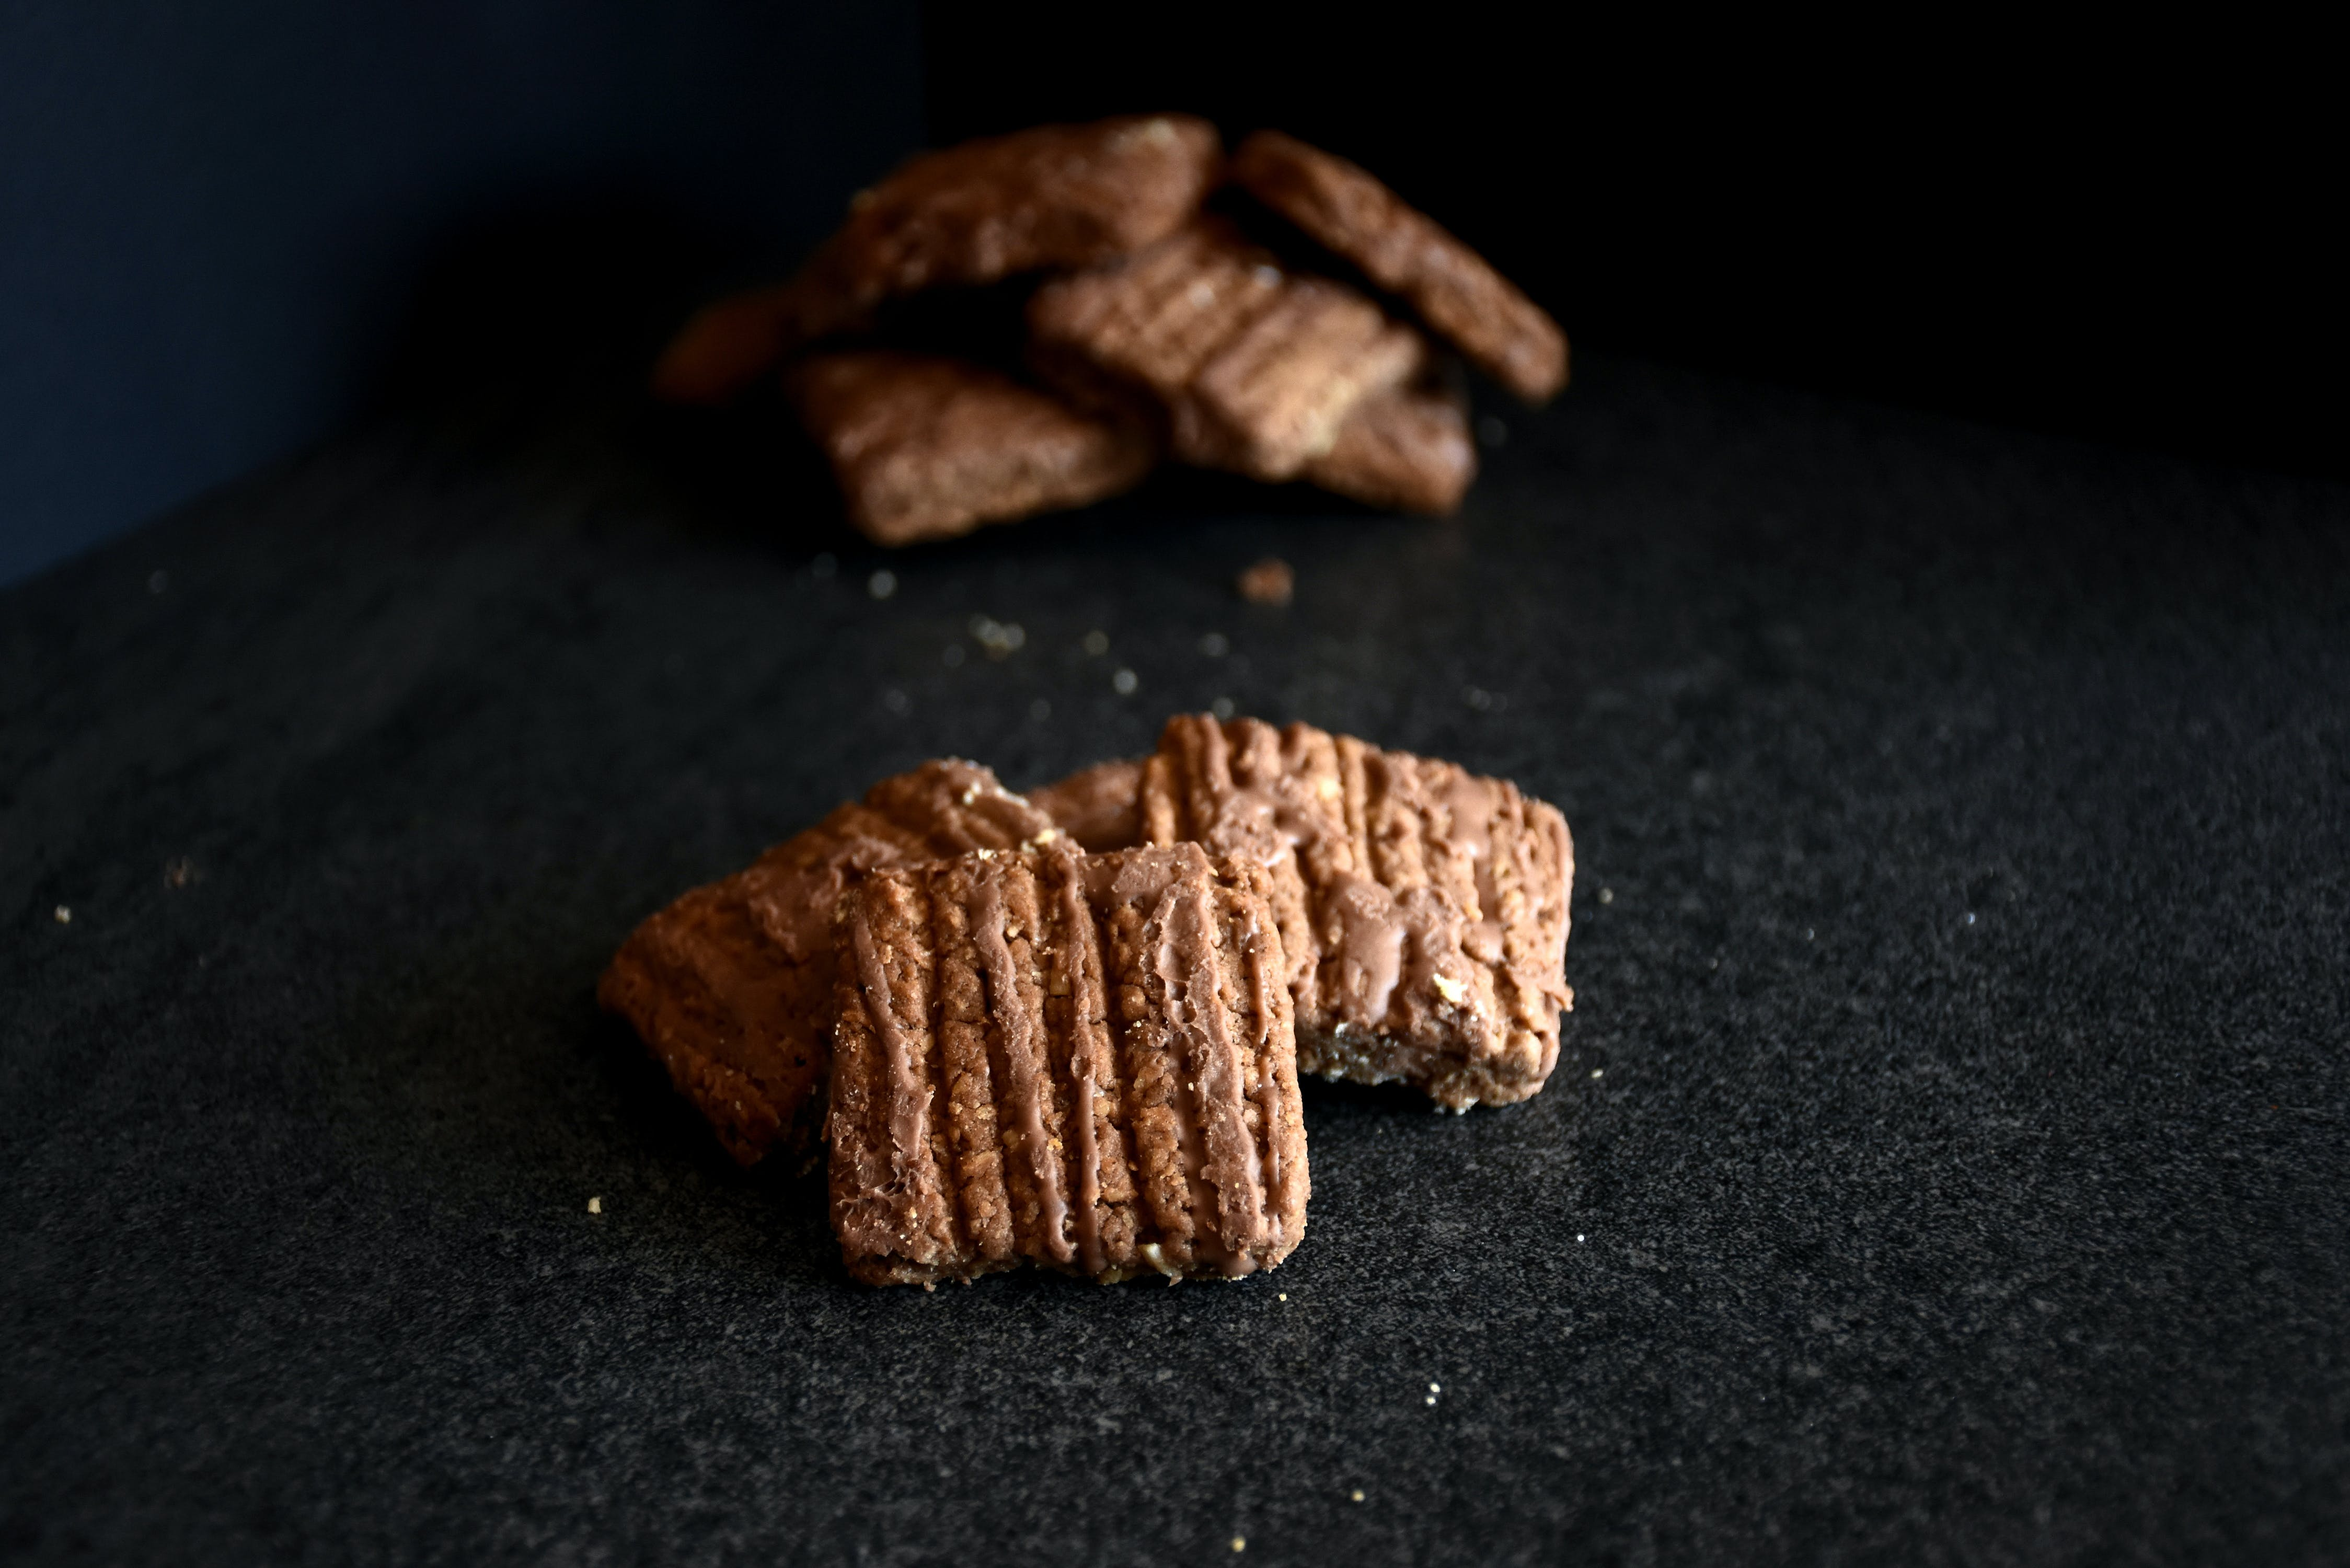 Brown Crackers On Black Cloth